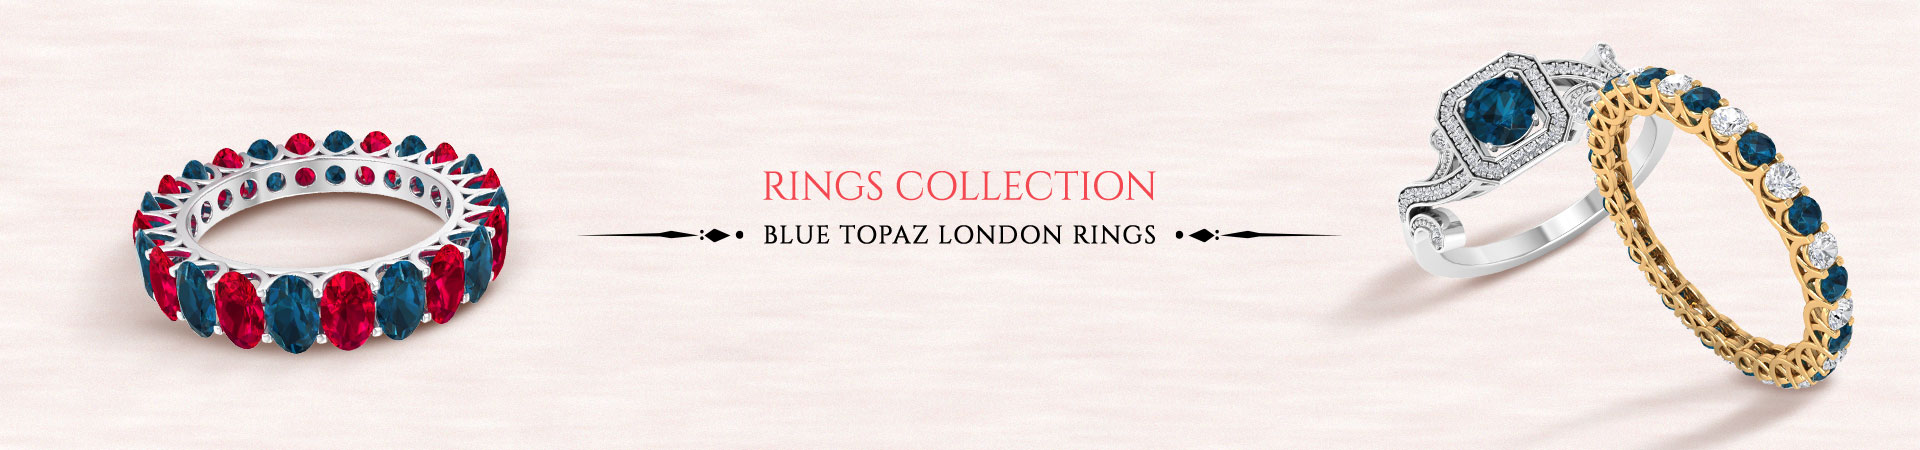 London Blue Topaz Rings